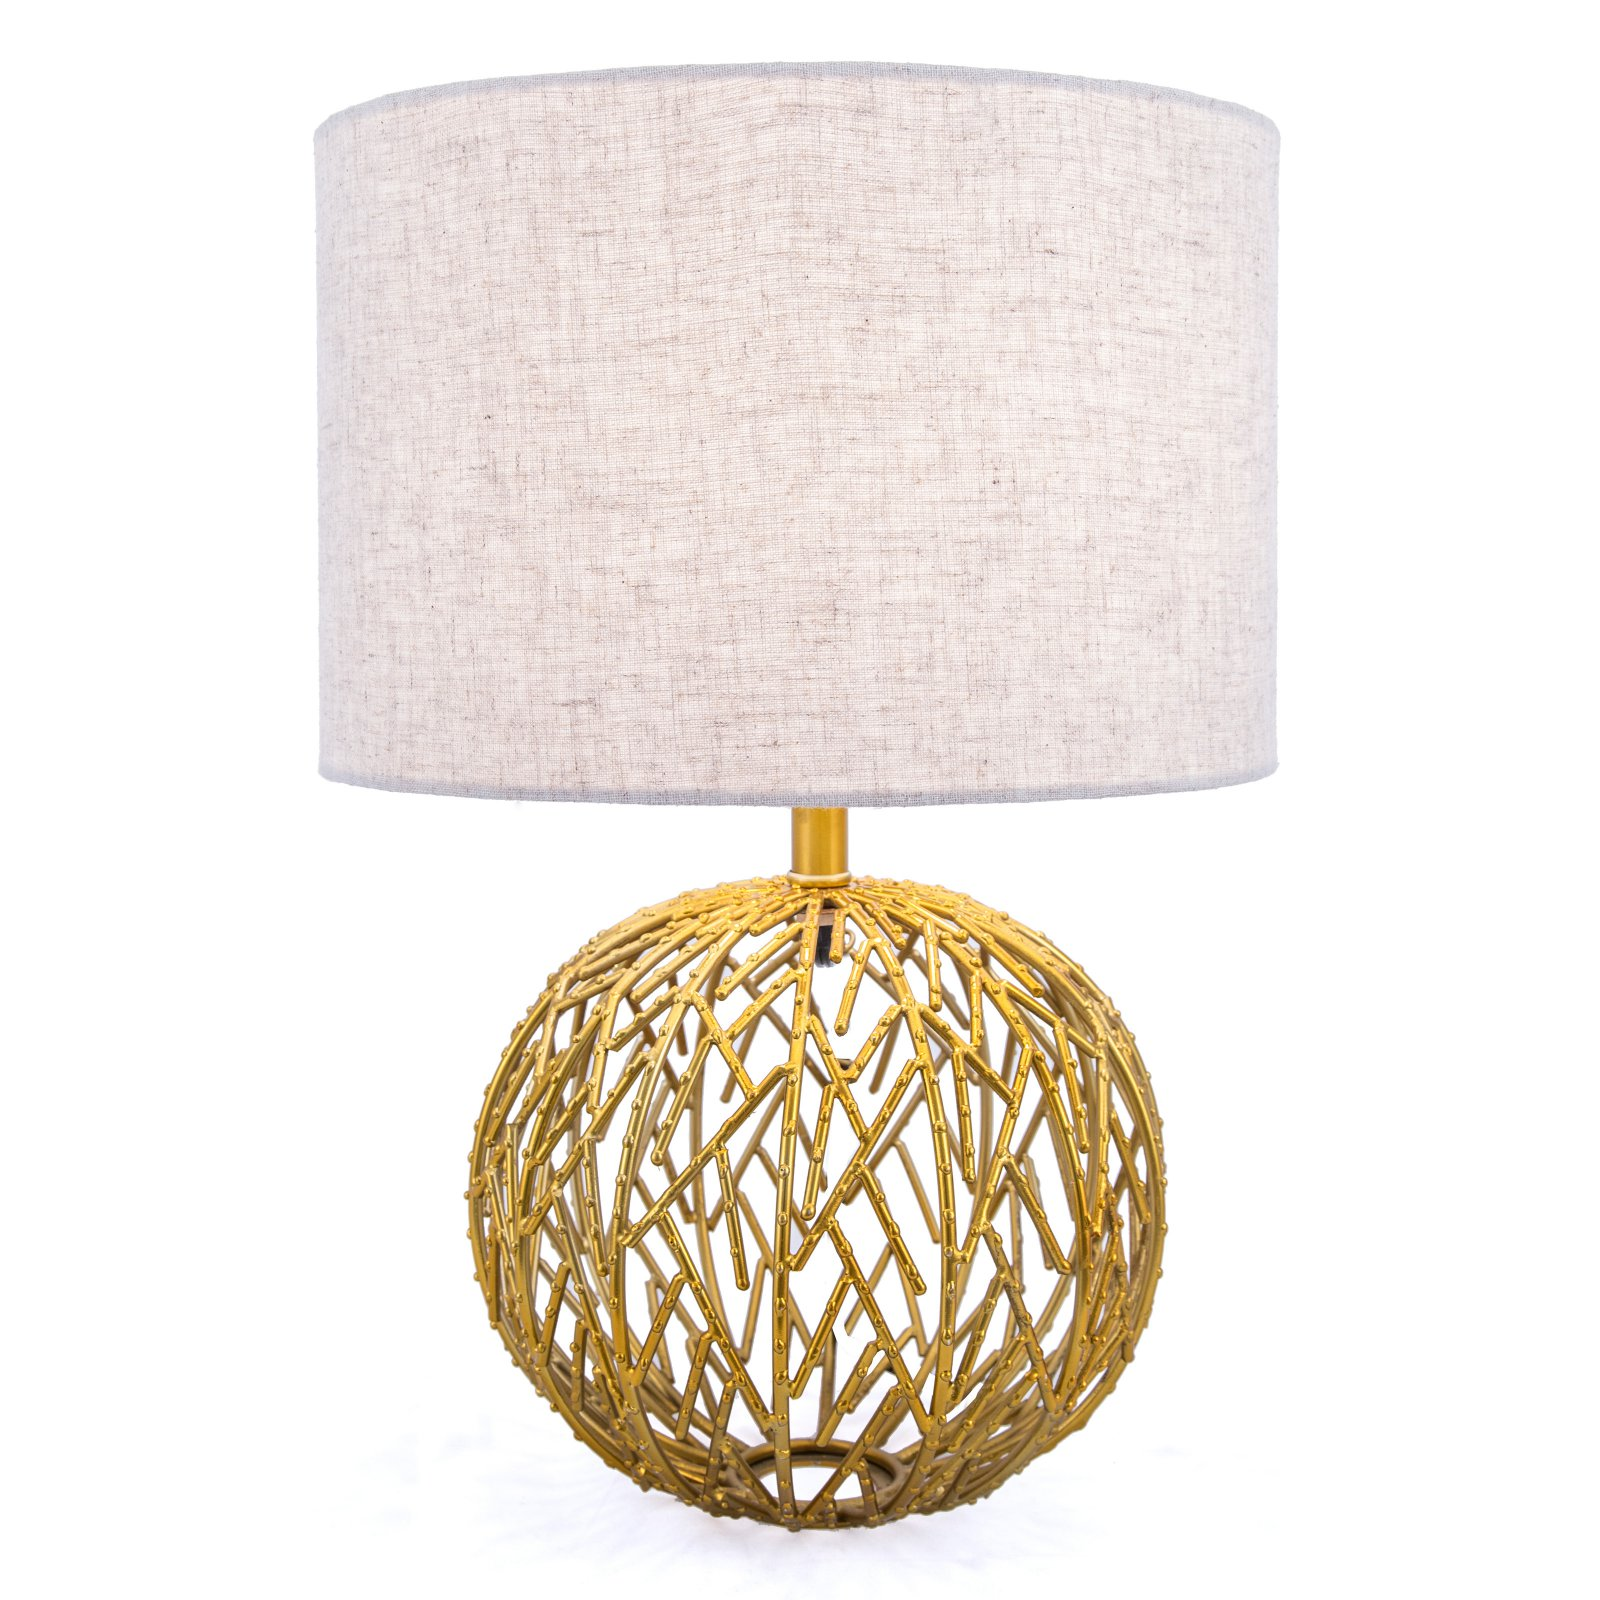 Watch Hill Lighting Gold Lattice Ball Table Lamp